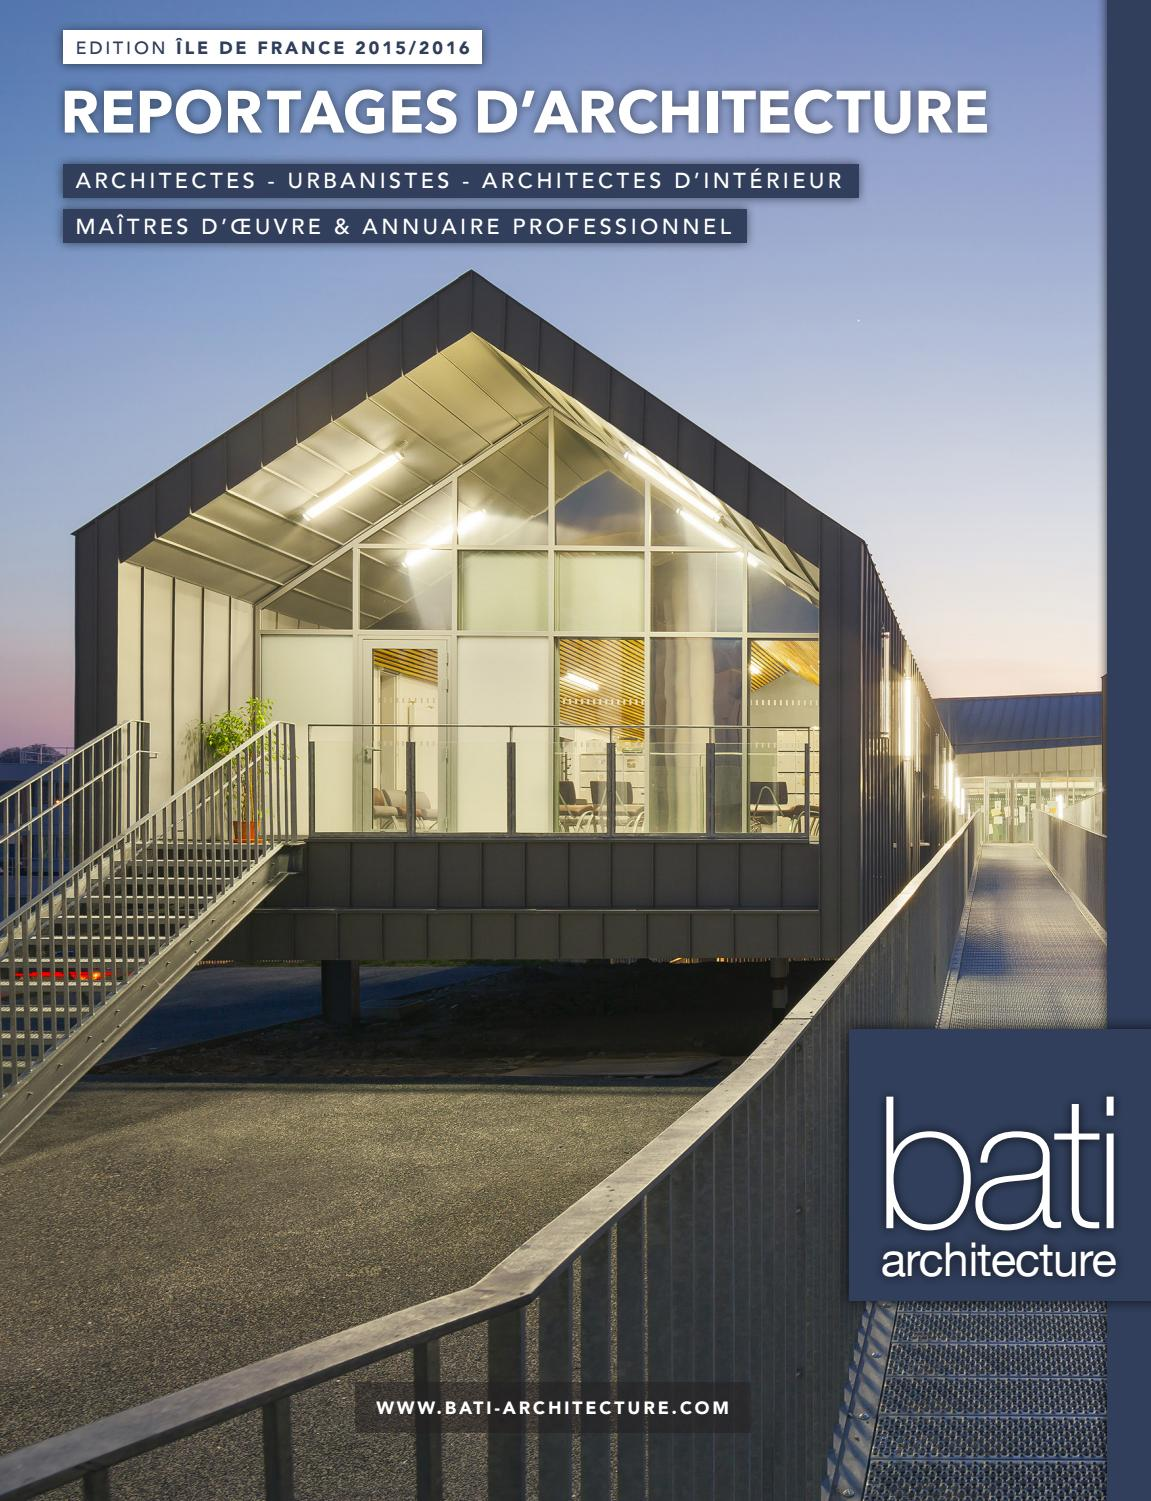 Cheminees Incandescence Herblay Revue Idf 15 16 Part 2 By Bati Architecture Issuu